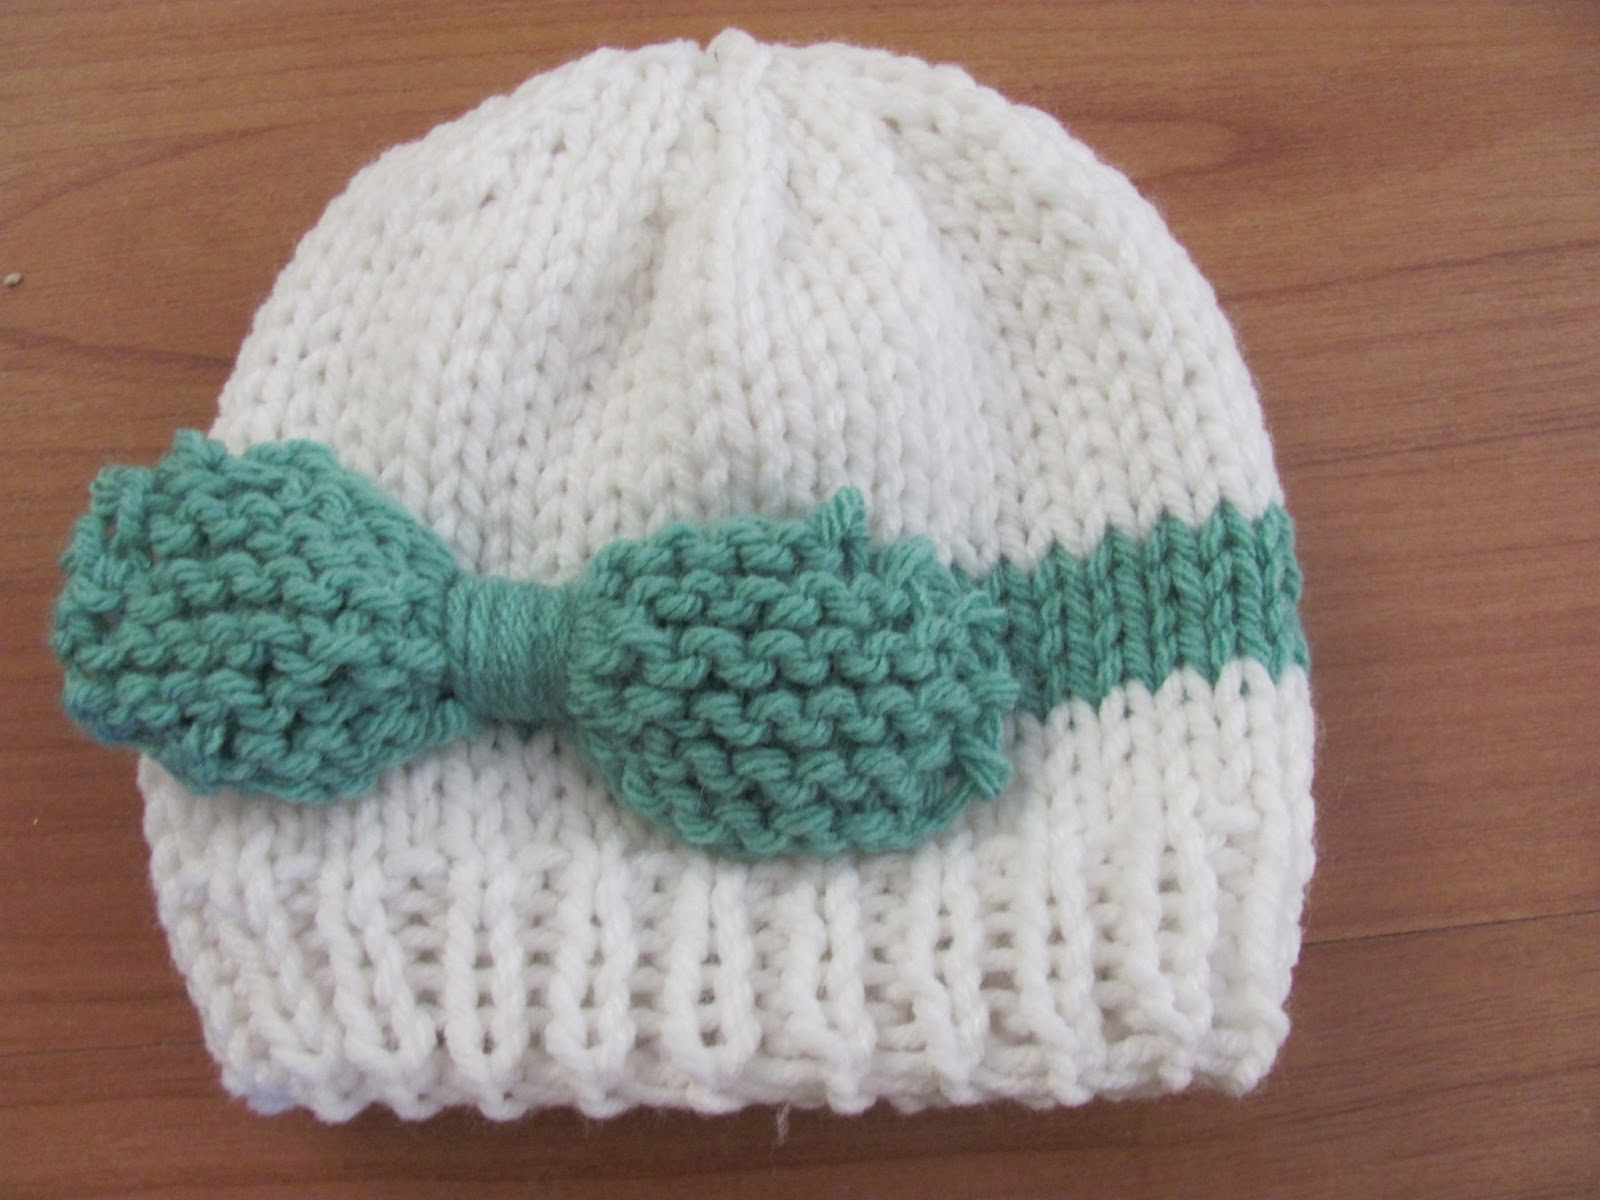 Knitted Baby Beanies Free Patterns : Twenty Something Granny: Knitted Baby Bow Hat